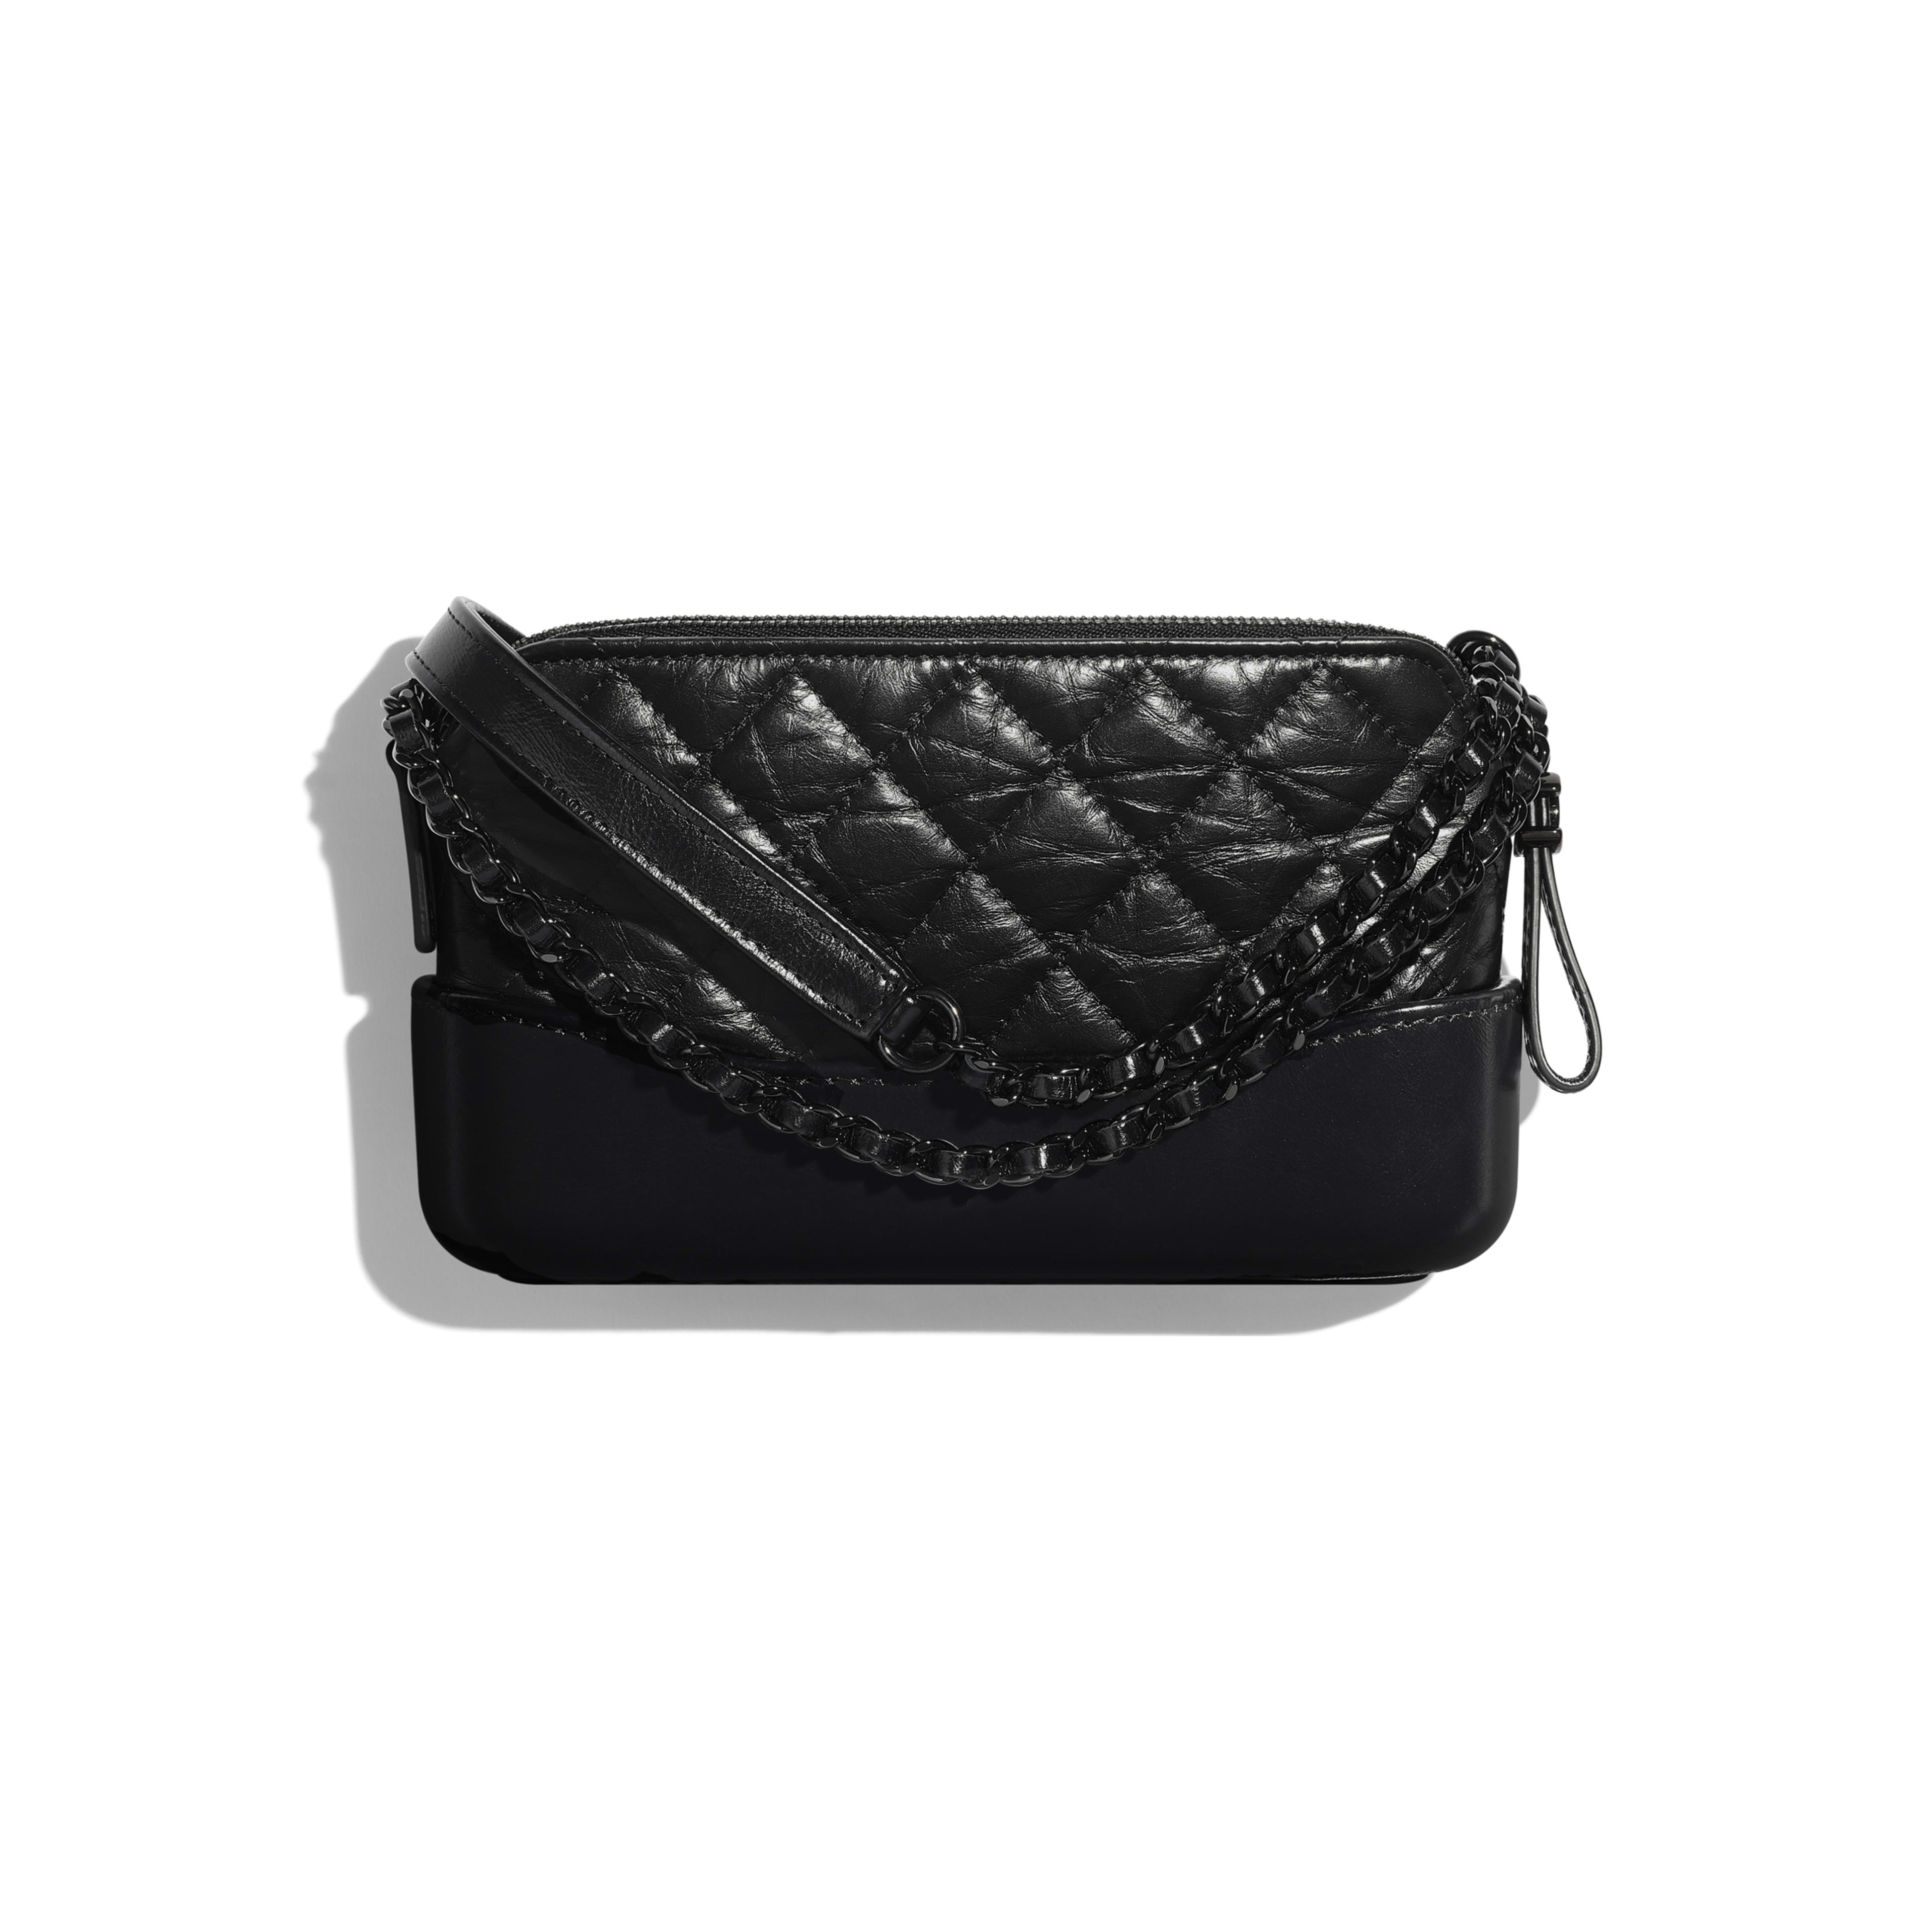 Aged Calfskin Smooth Black Metal Clutch With Chain Chanel